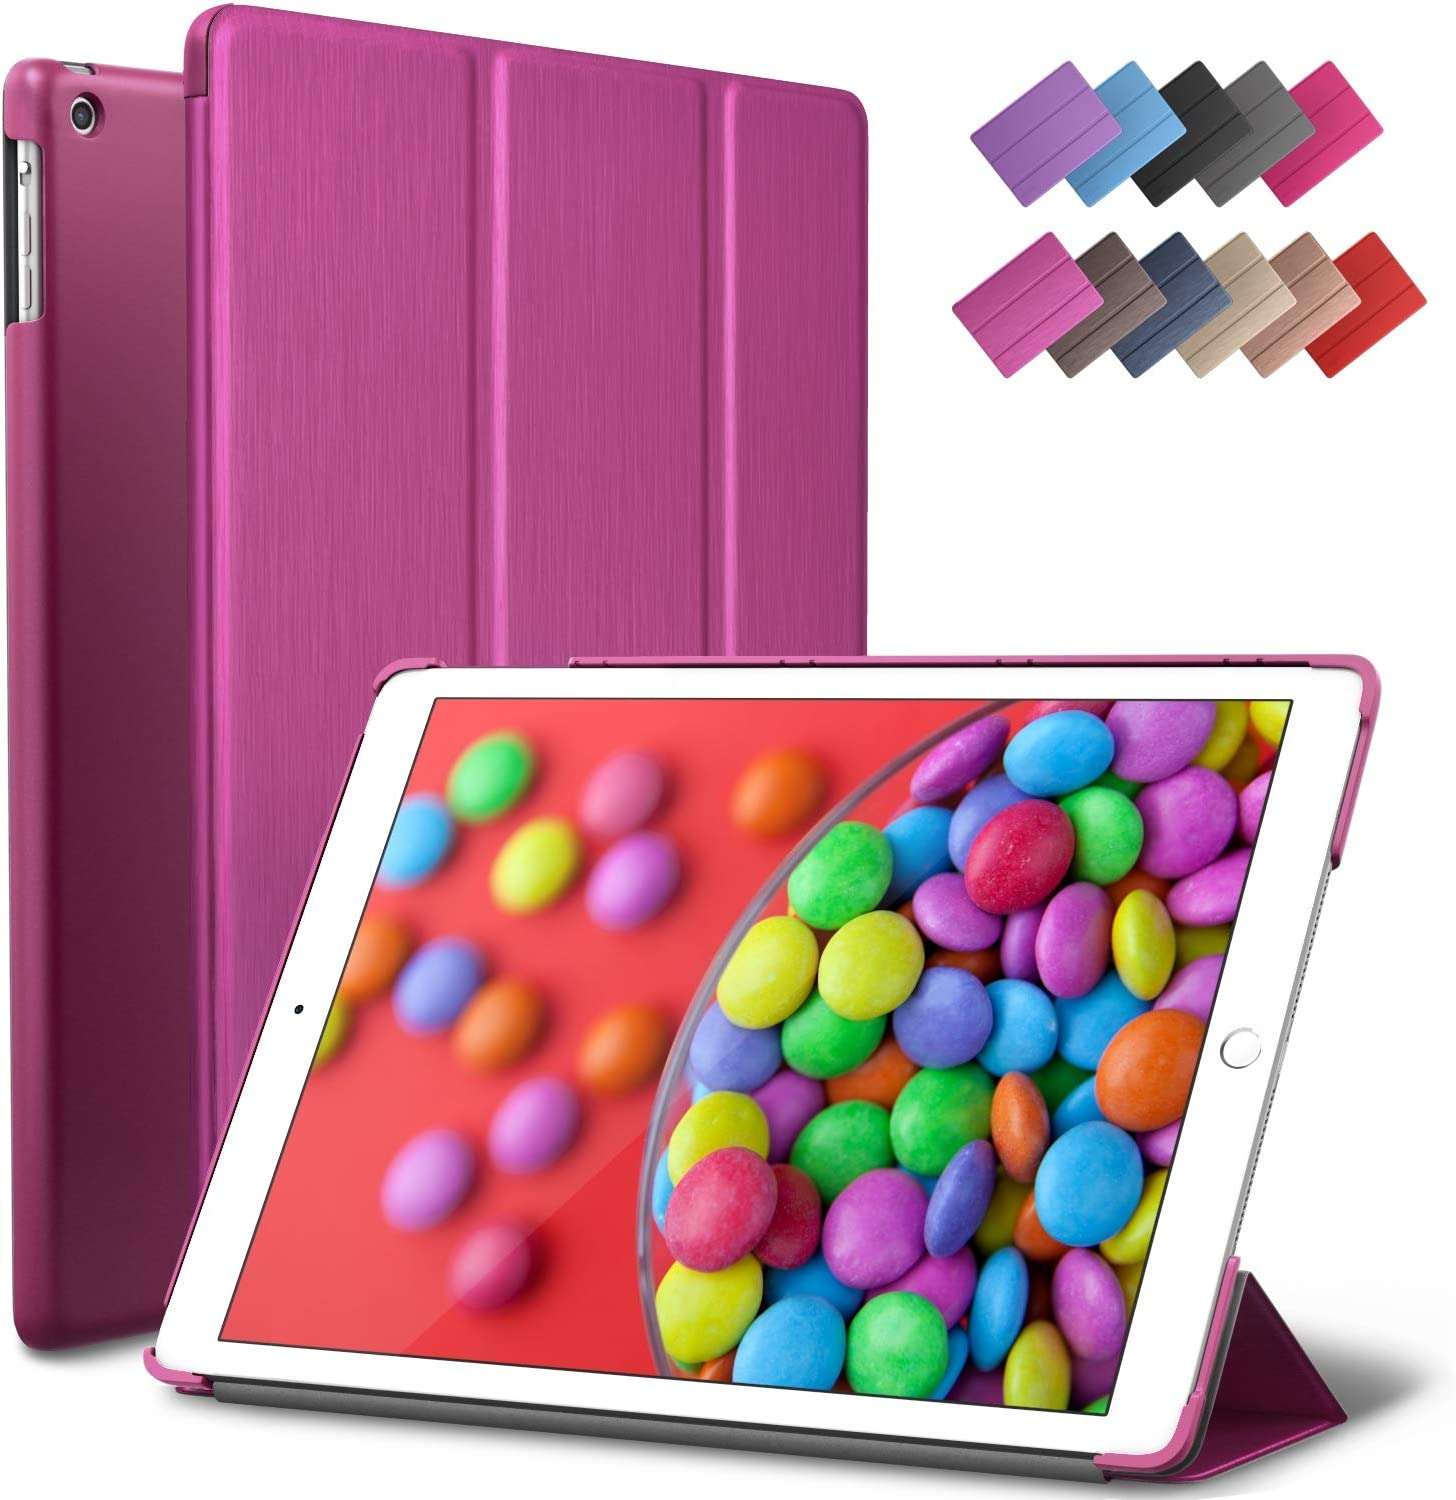 iPad Air Case, ROARTZ Metallic Magenta Slim Fit Smart Rubber Coated Folio Case Hard Shell Cover Light-Weight Auto Wake/Sleep for Apple iPad Air 1st Generation Model A1474/A1475/A1476 Retina Display